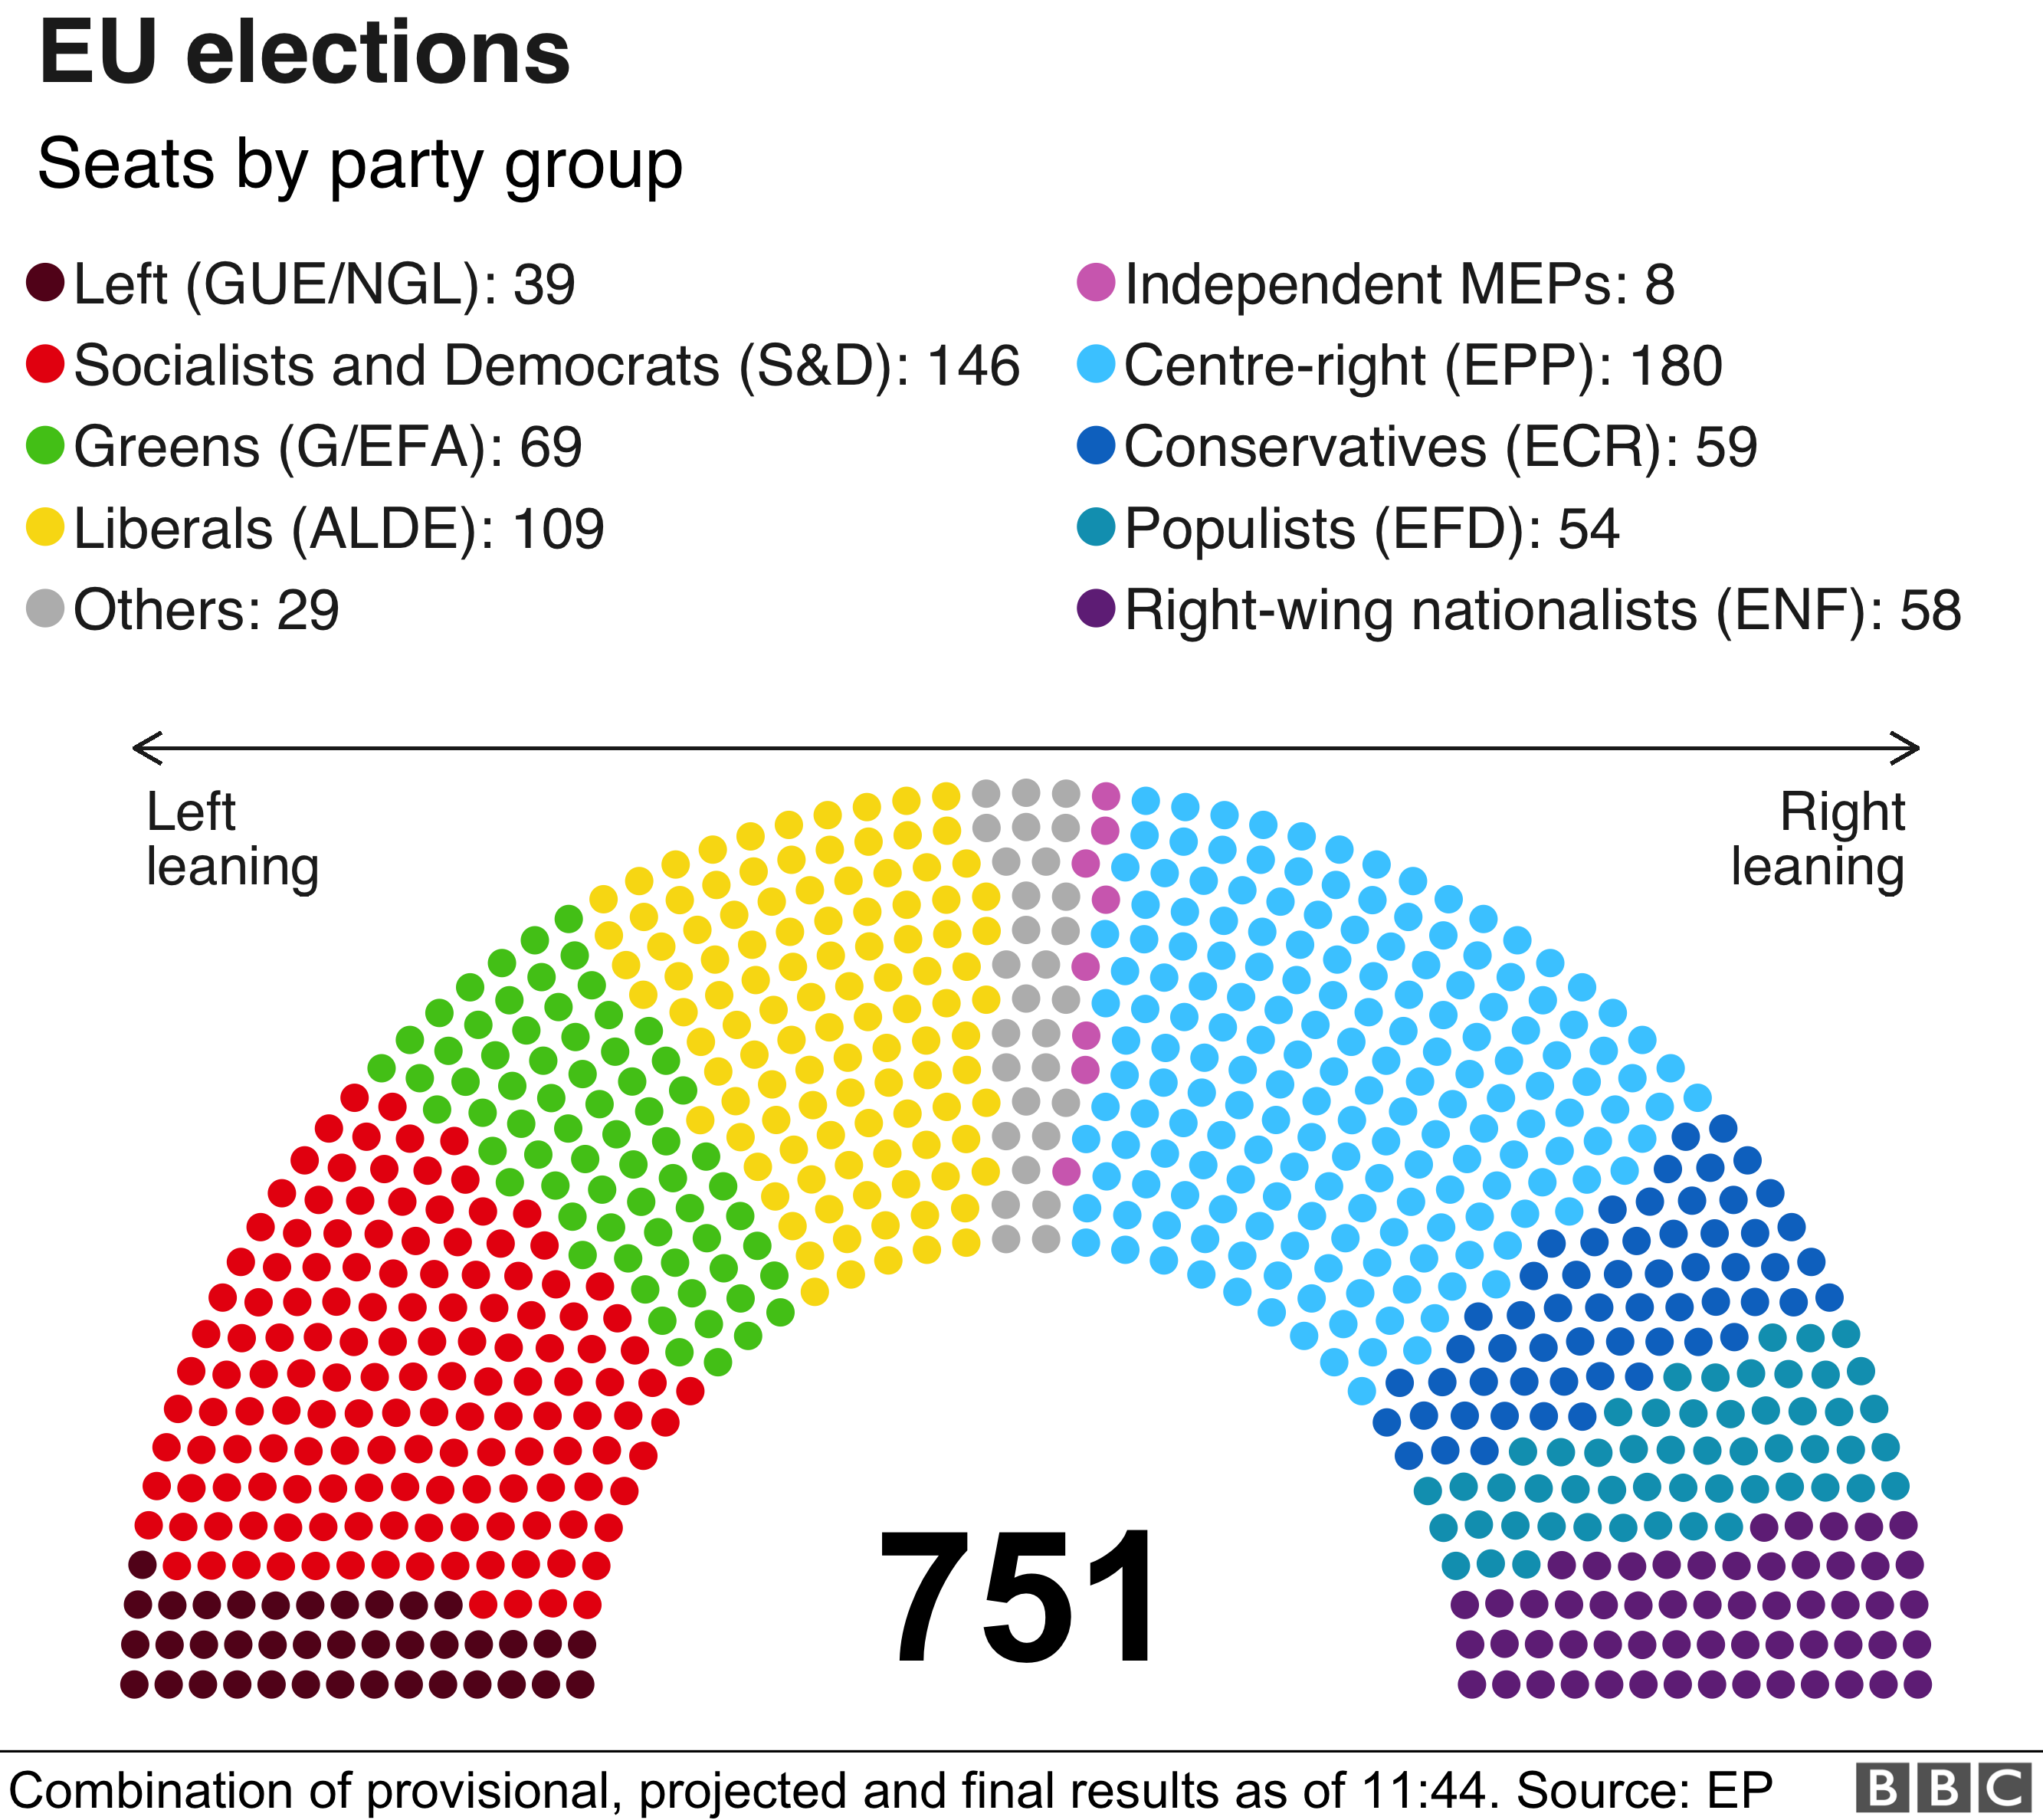 New European Parliament by party group